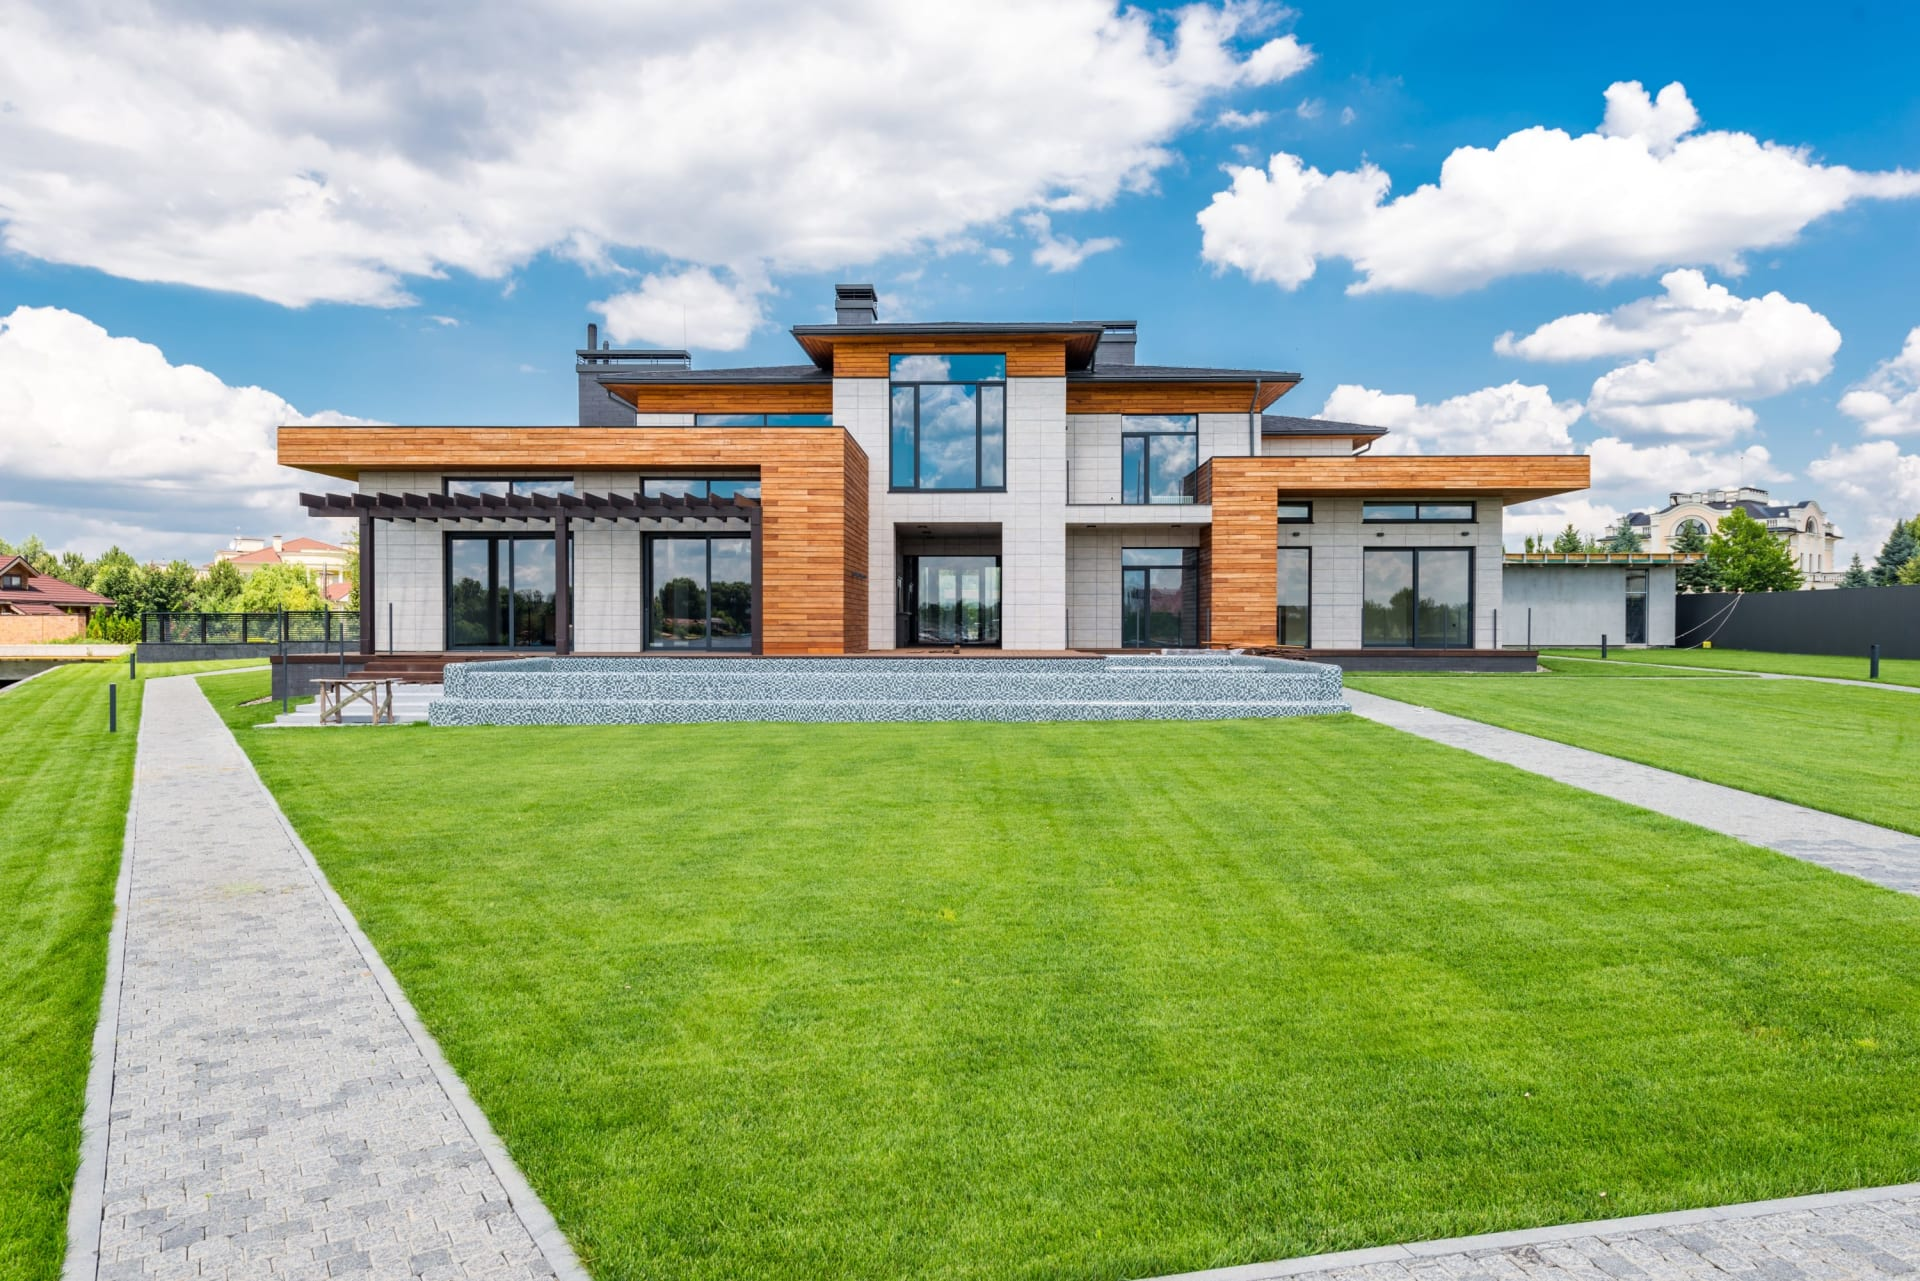 New Canaan Lifestyle: 10.13-10.31: Modern House Day Tour and October 4Design